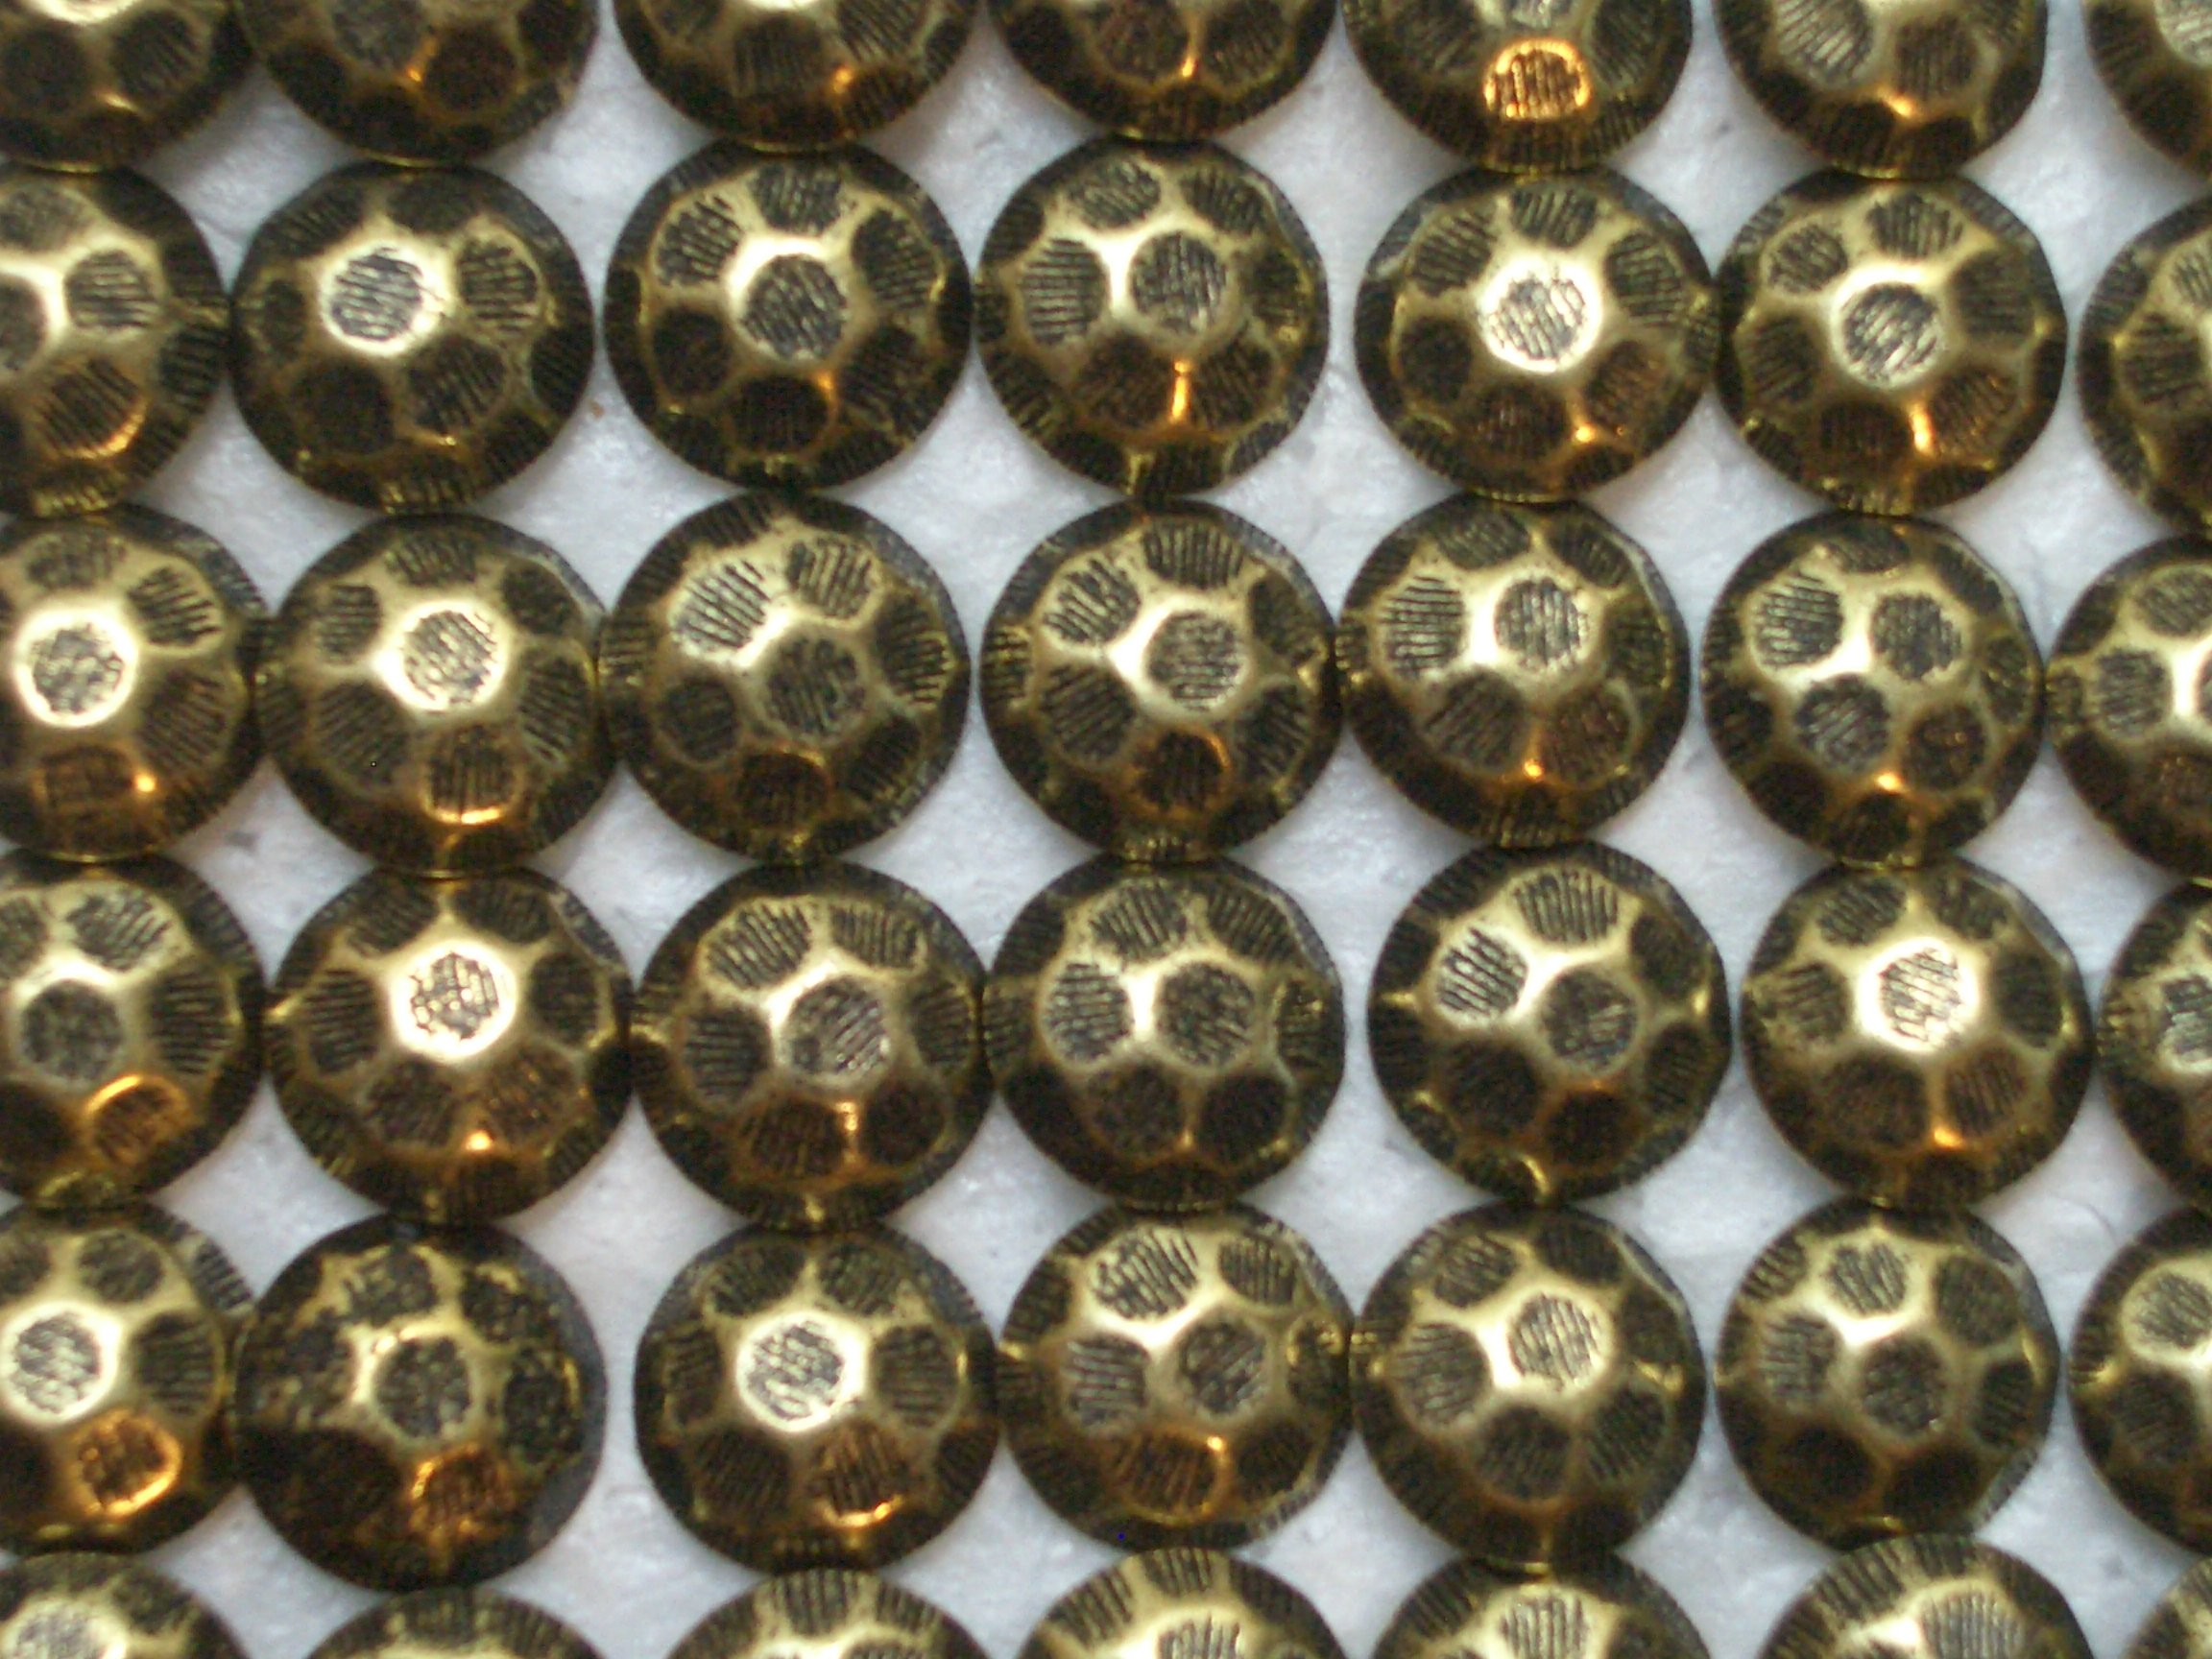 Antique Brass Upholstery Tacks Nails Hammered Finish 7/16 Inch Head 1/2 Inch Shank (250)